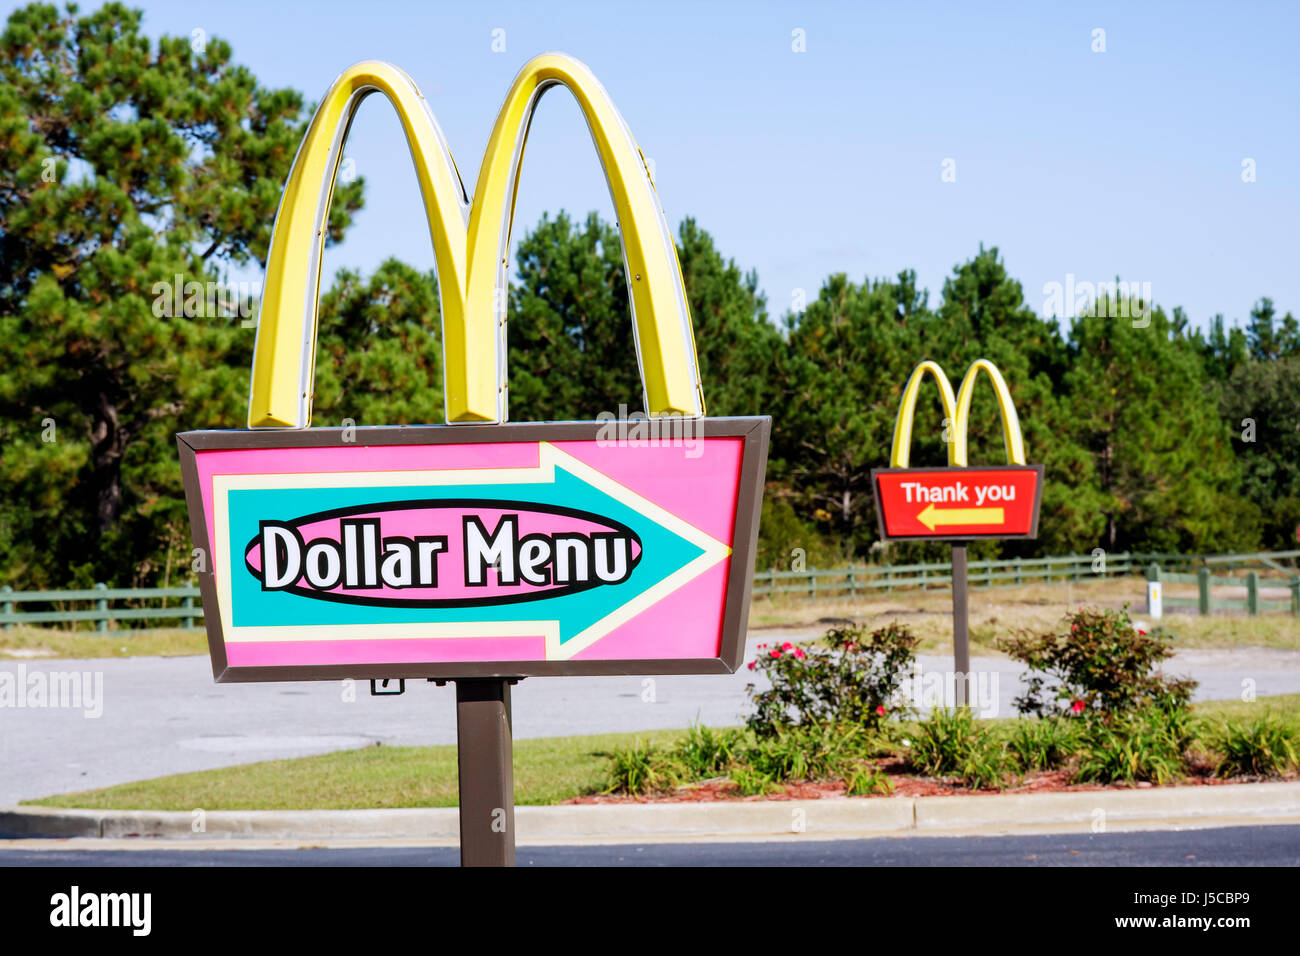 Georgia South Newport McDonald's Restaurant chain franchise fast food drive through name brand signs dollar - Stock Image